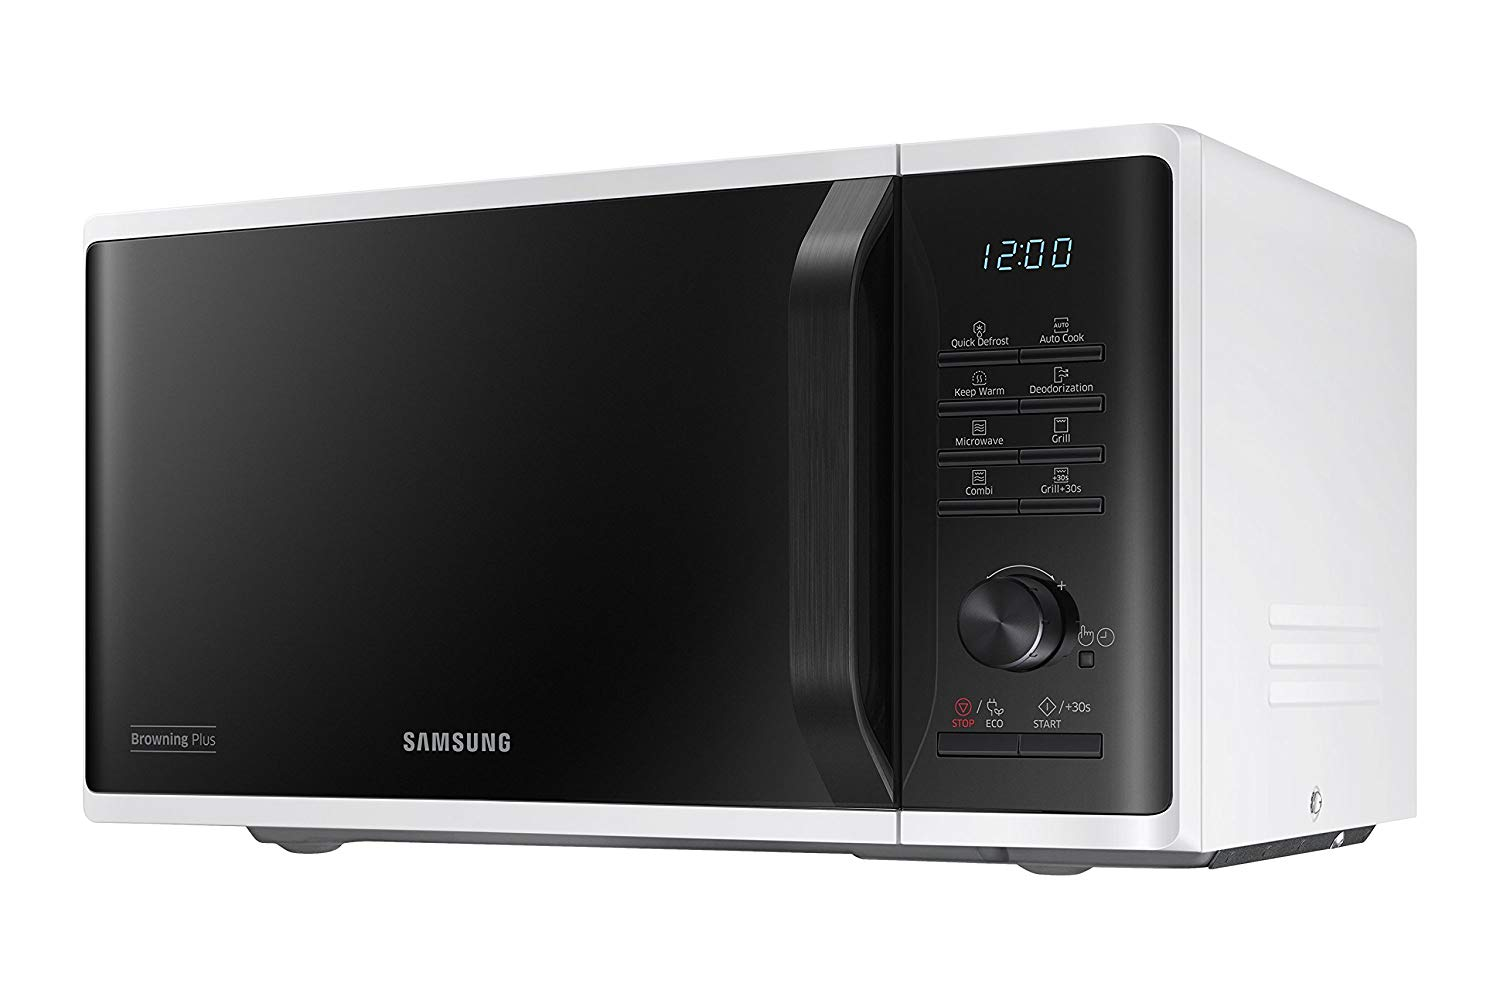 Samsung Microwave with Grill 23Ltrs 800W MG23K3515AW